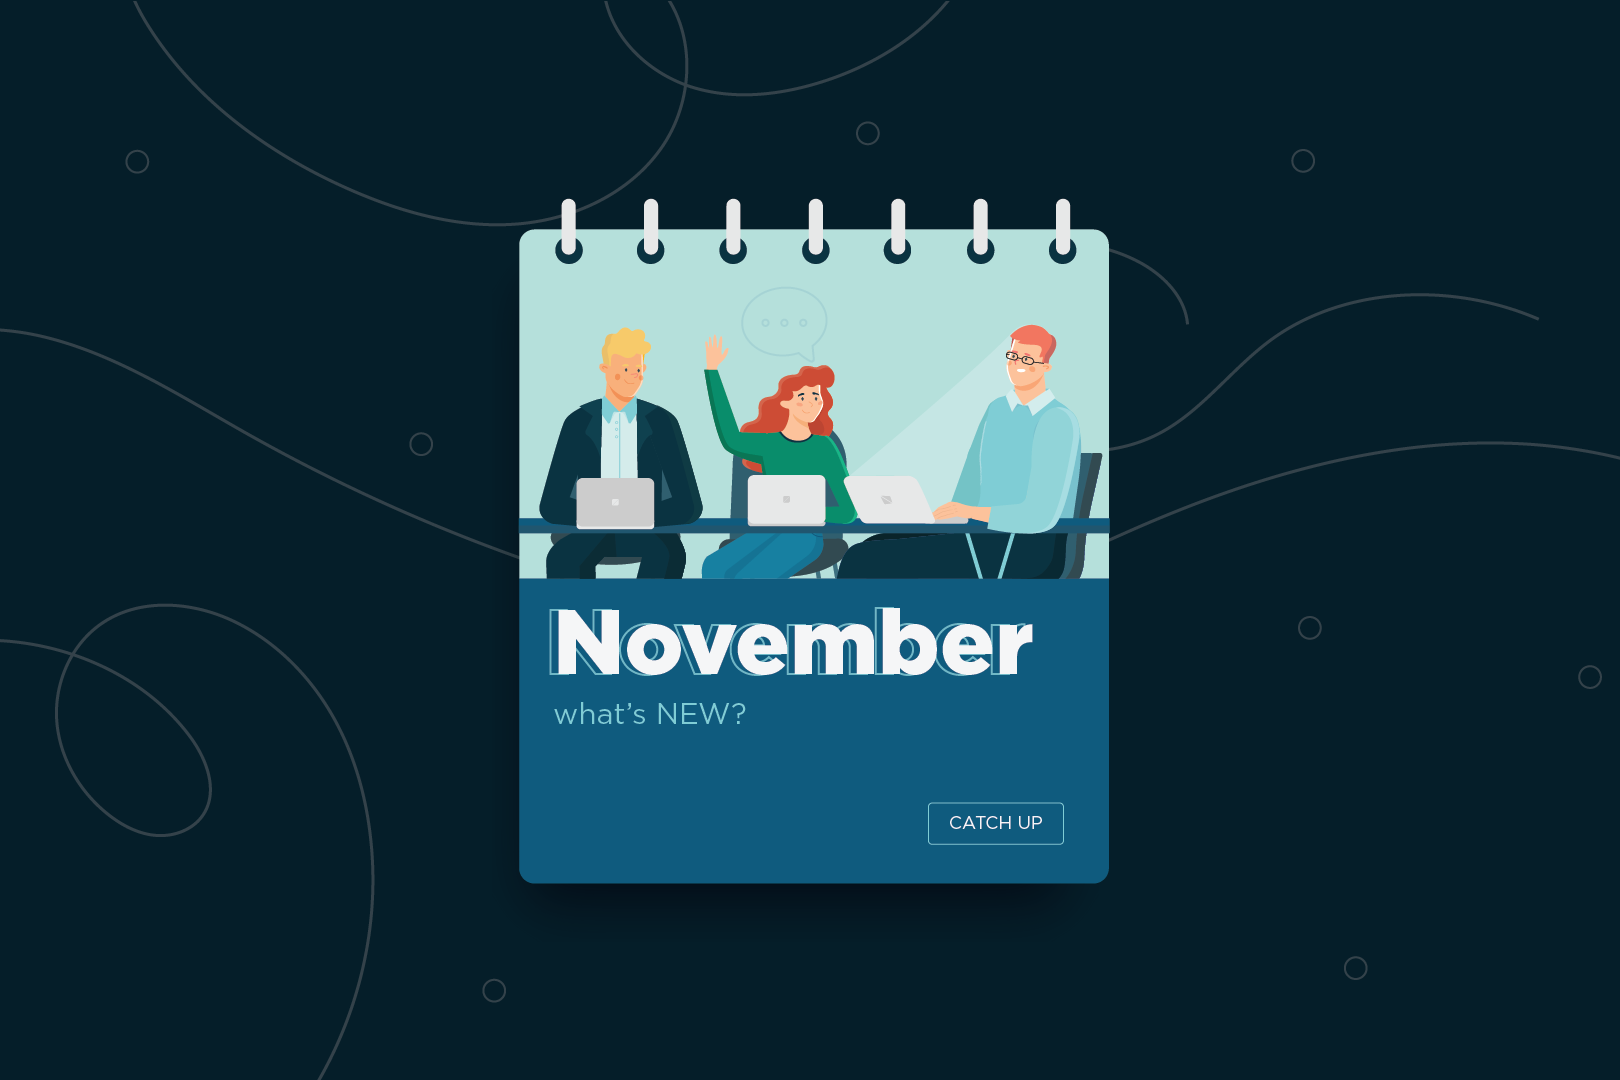 November Overview: Presentation Workshops, Blog Posts, and Webinars